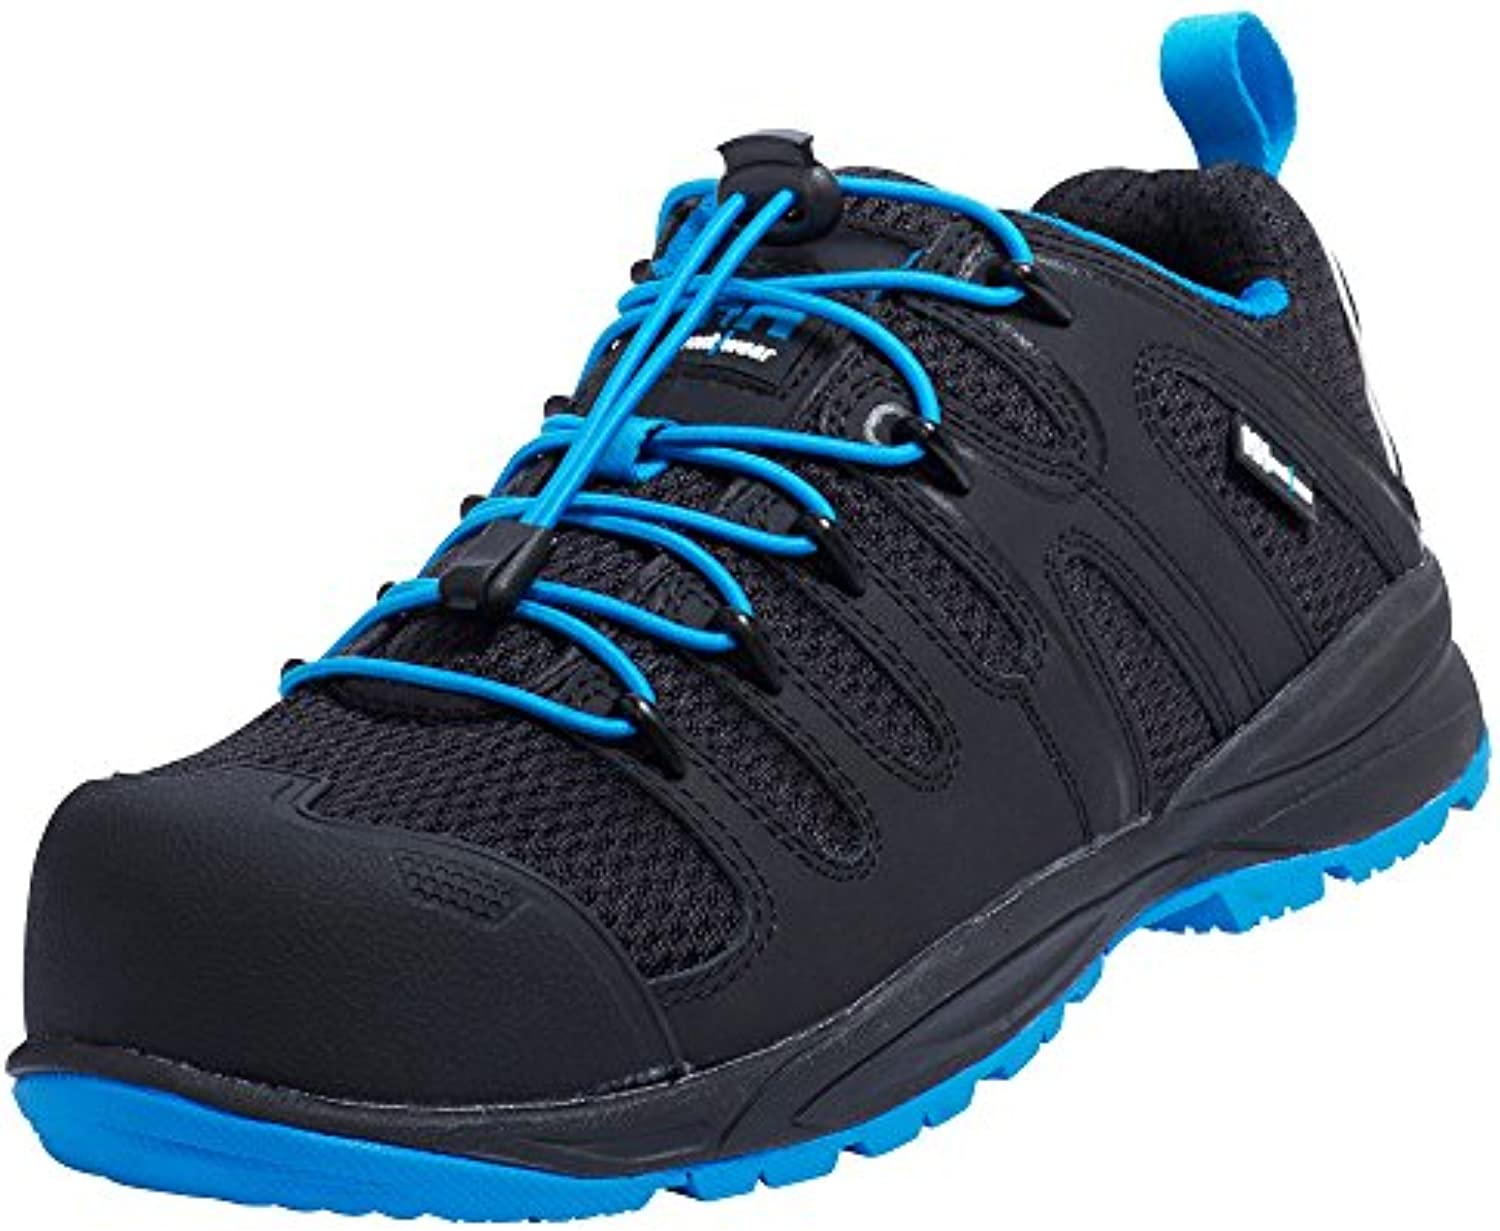 Zapatillas de seguridad Flint Low WW Helly Hansen